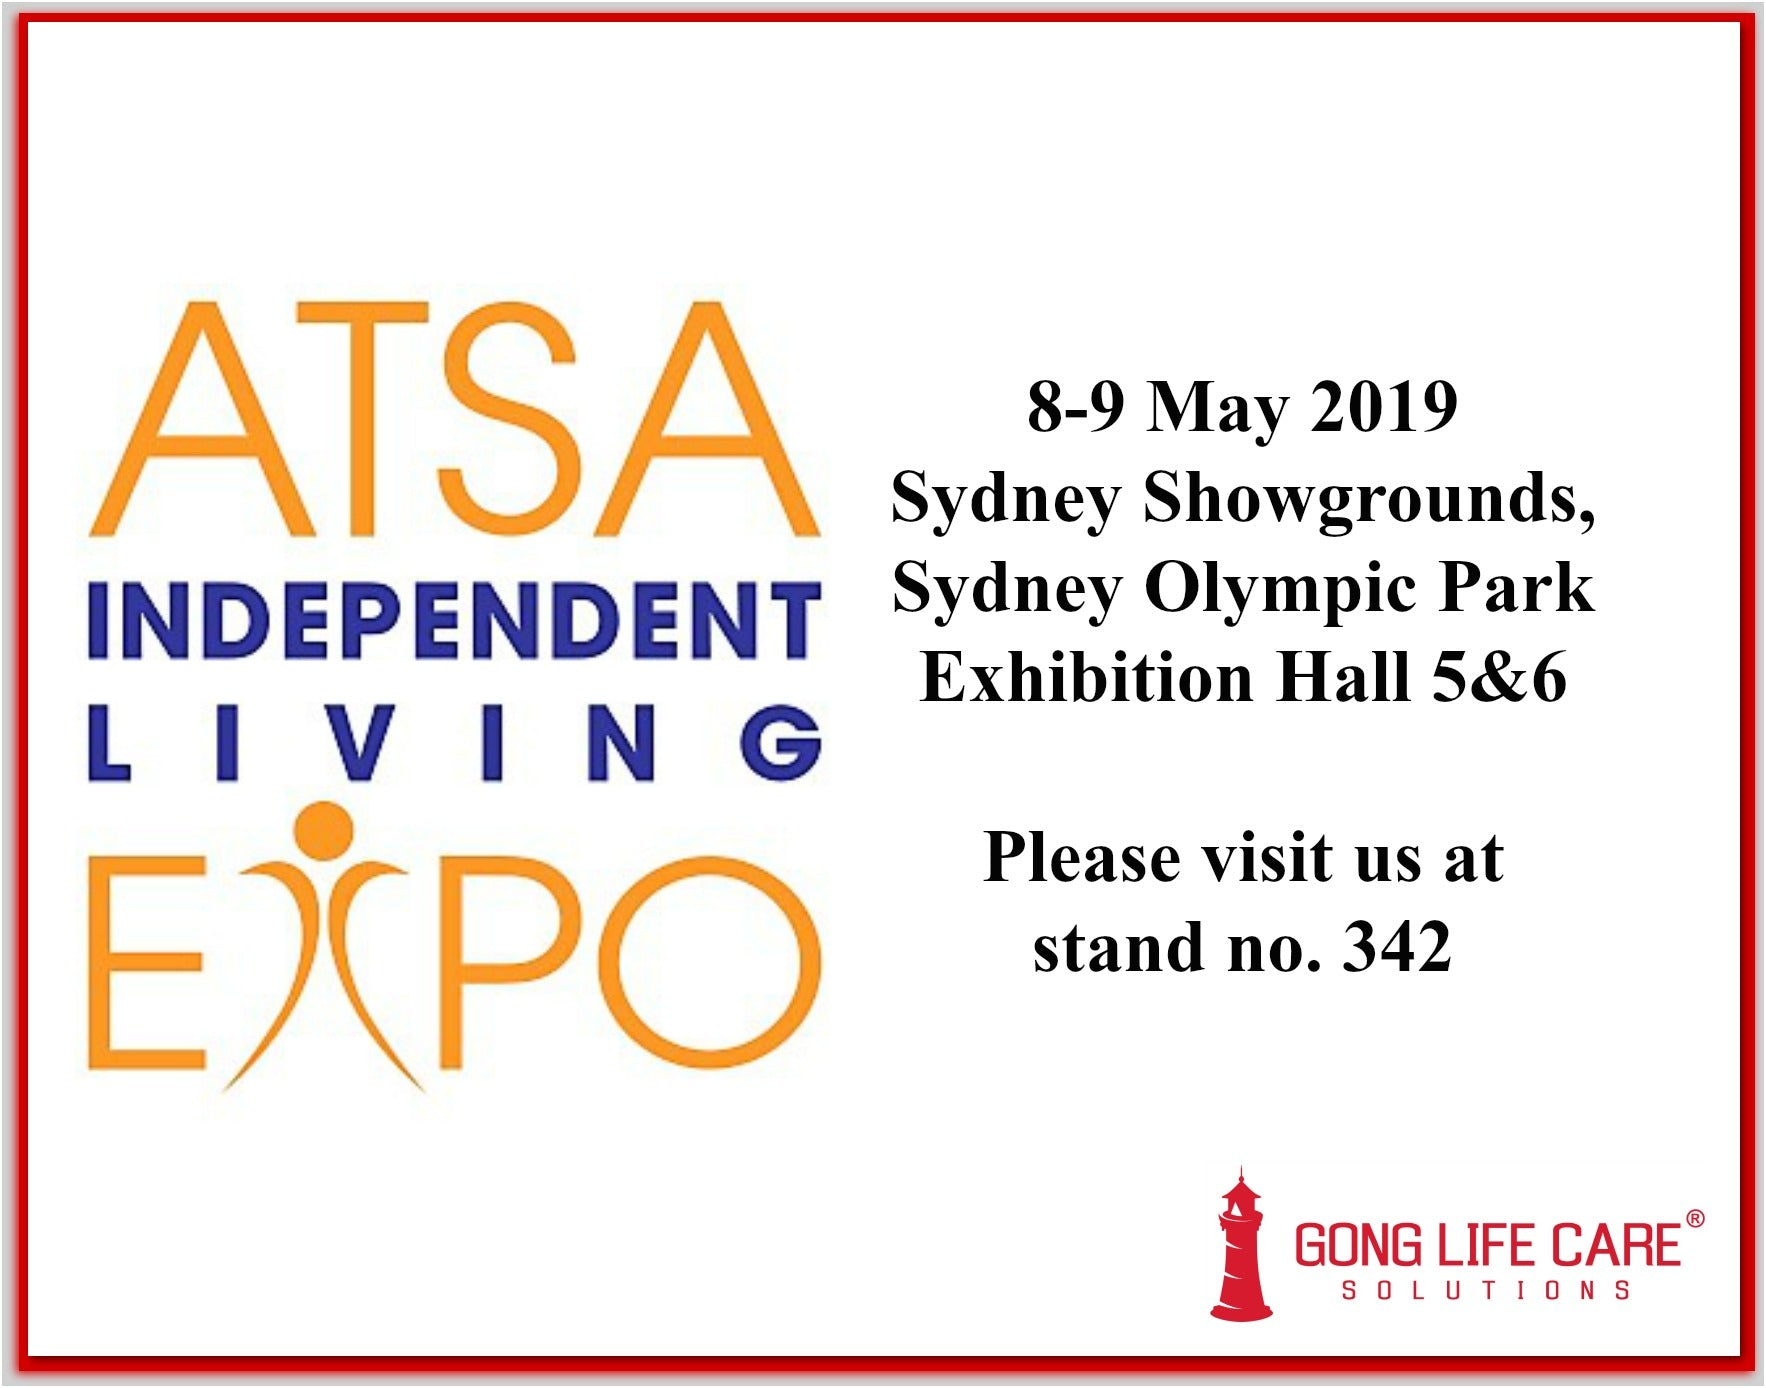 Gong Life Care Solutions at ATSA Sydney May 2019